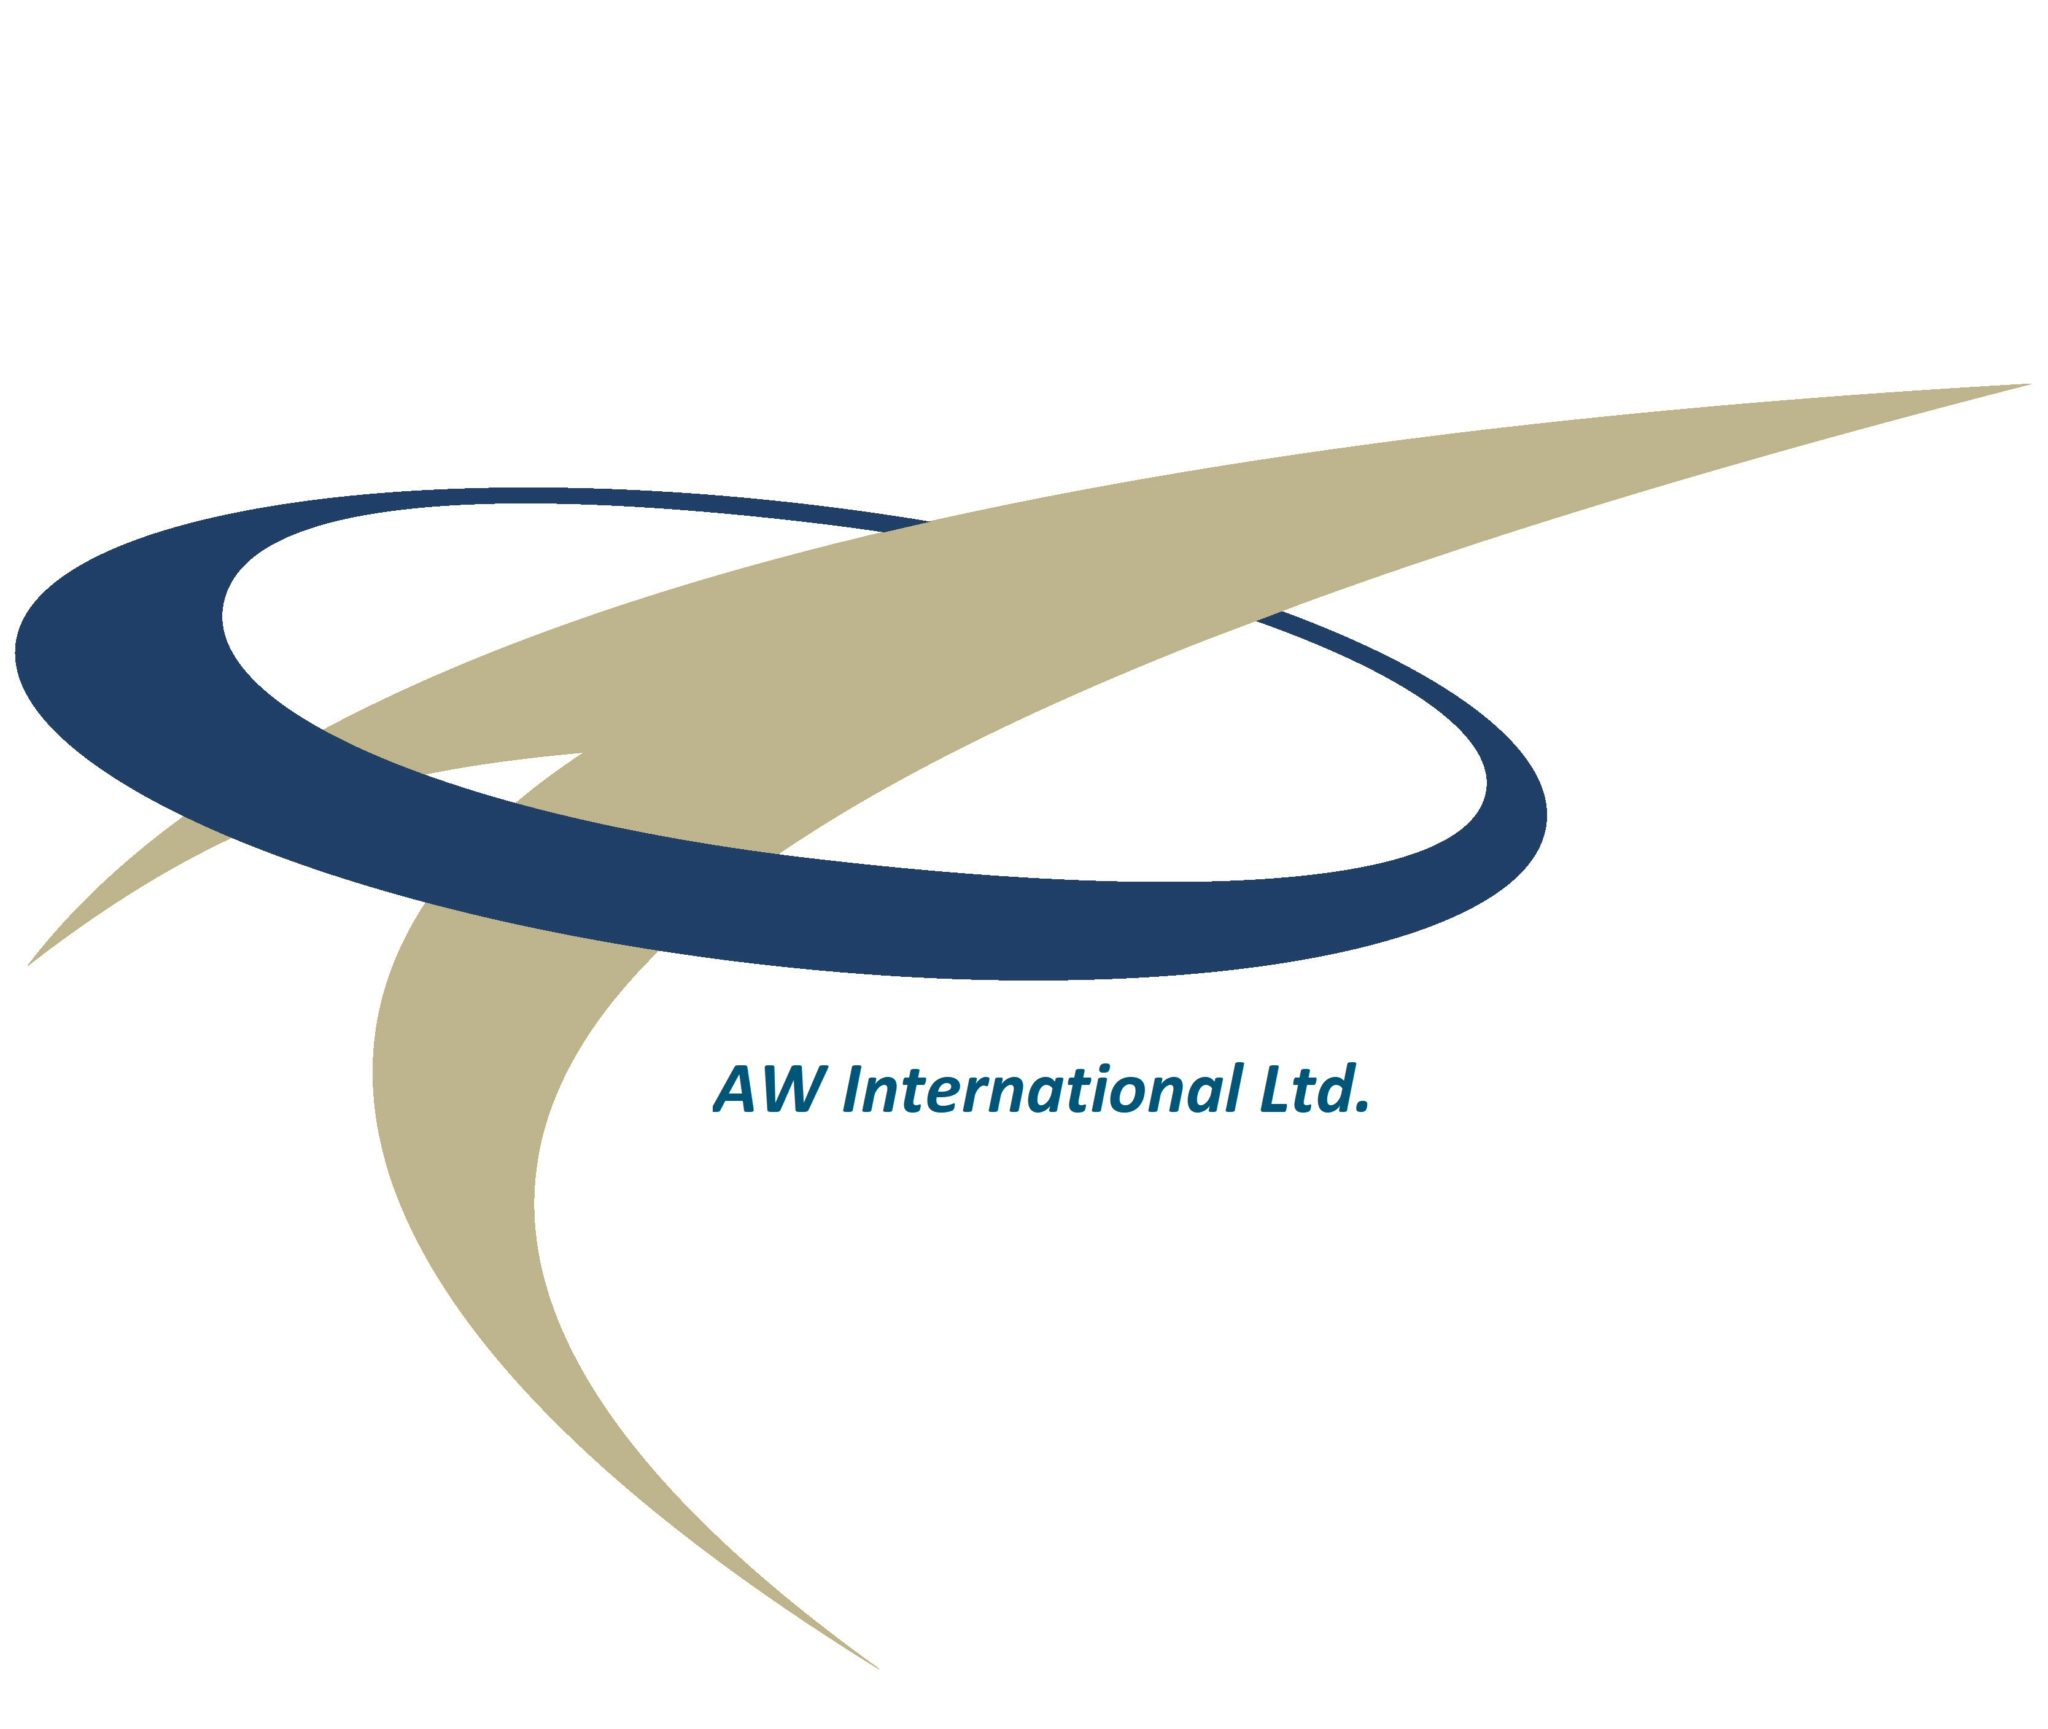 AW International Ltd.